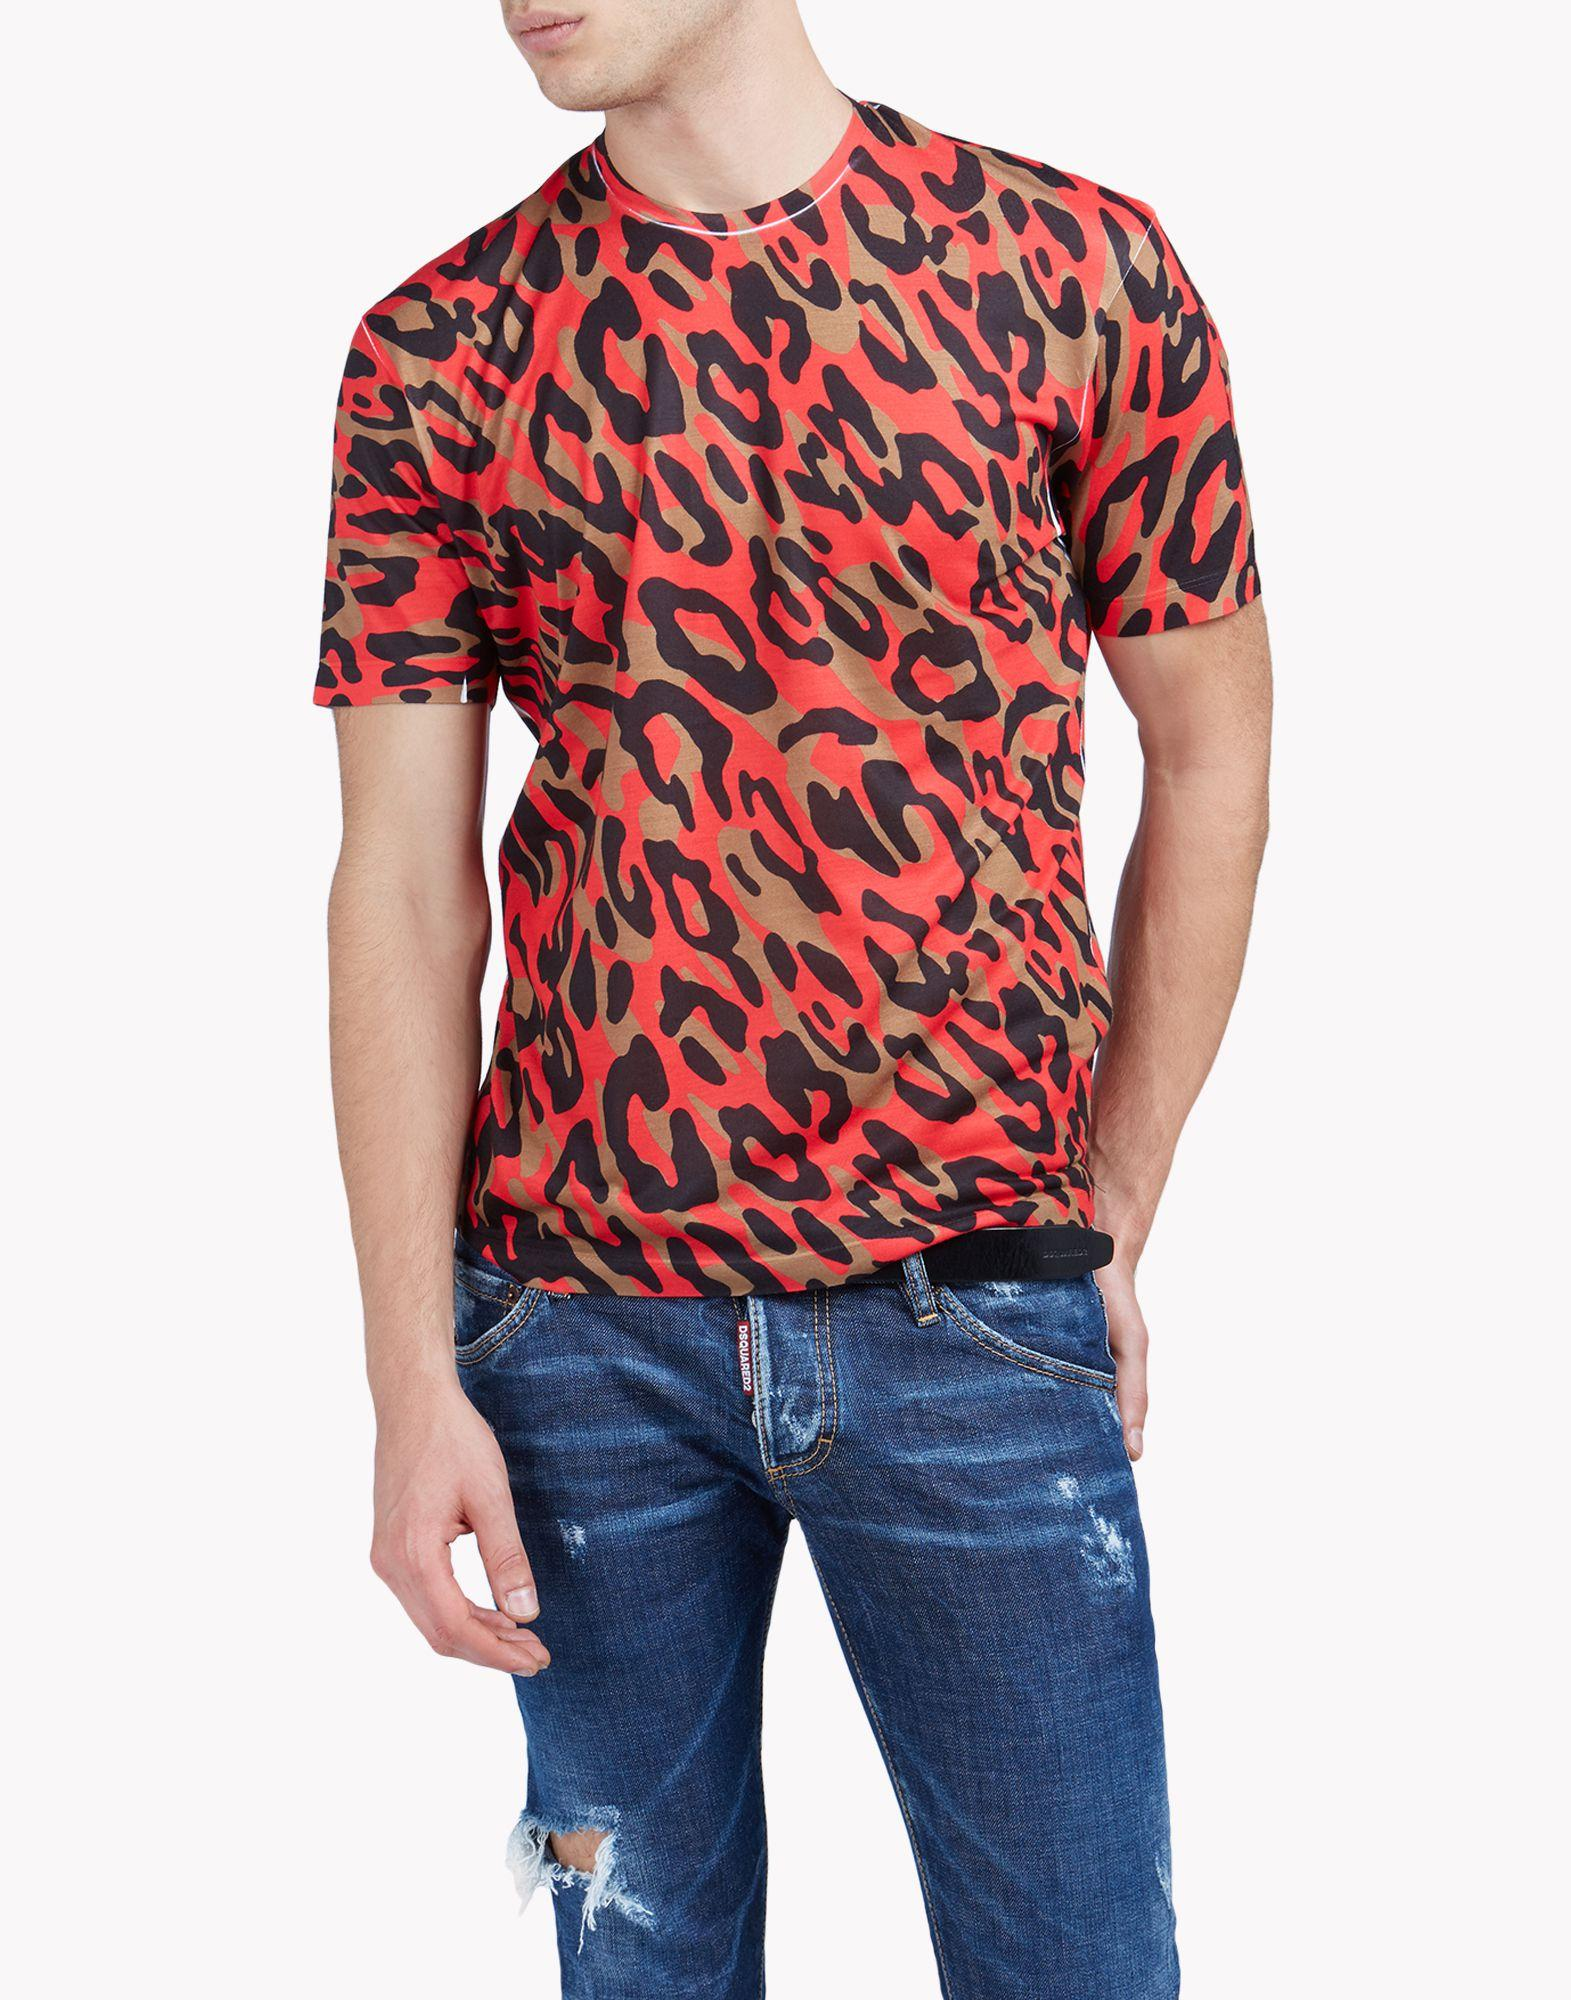 Dsquared camouflage print t shirt for men lyst for Camo print t shirt